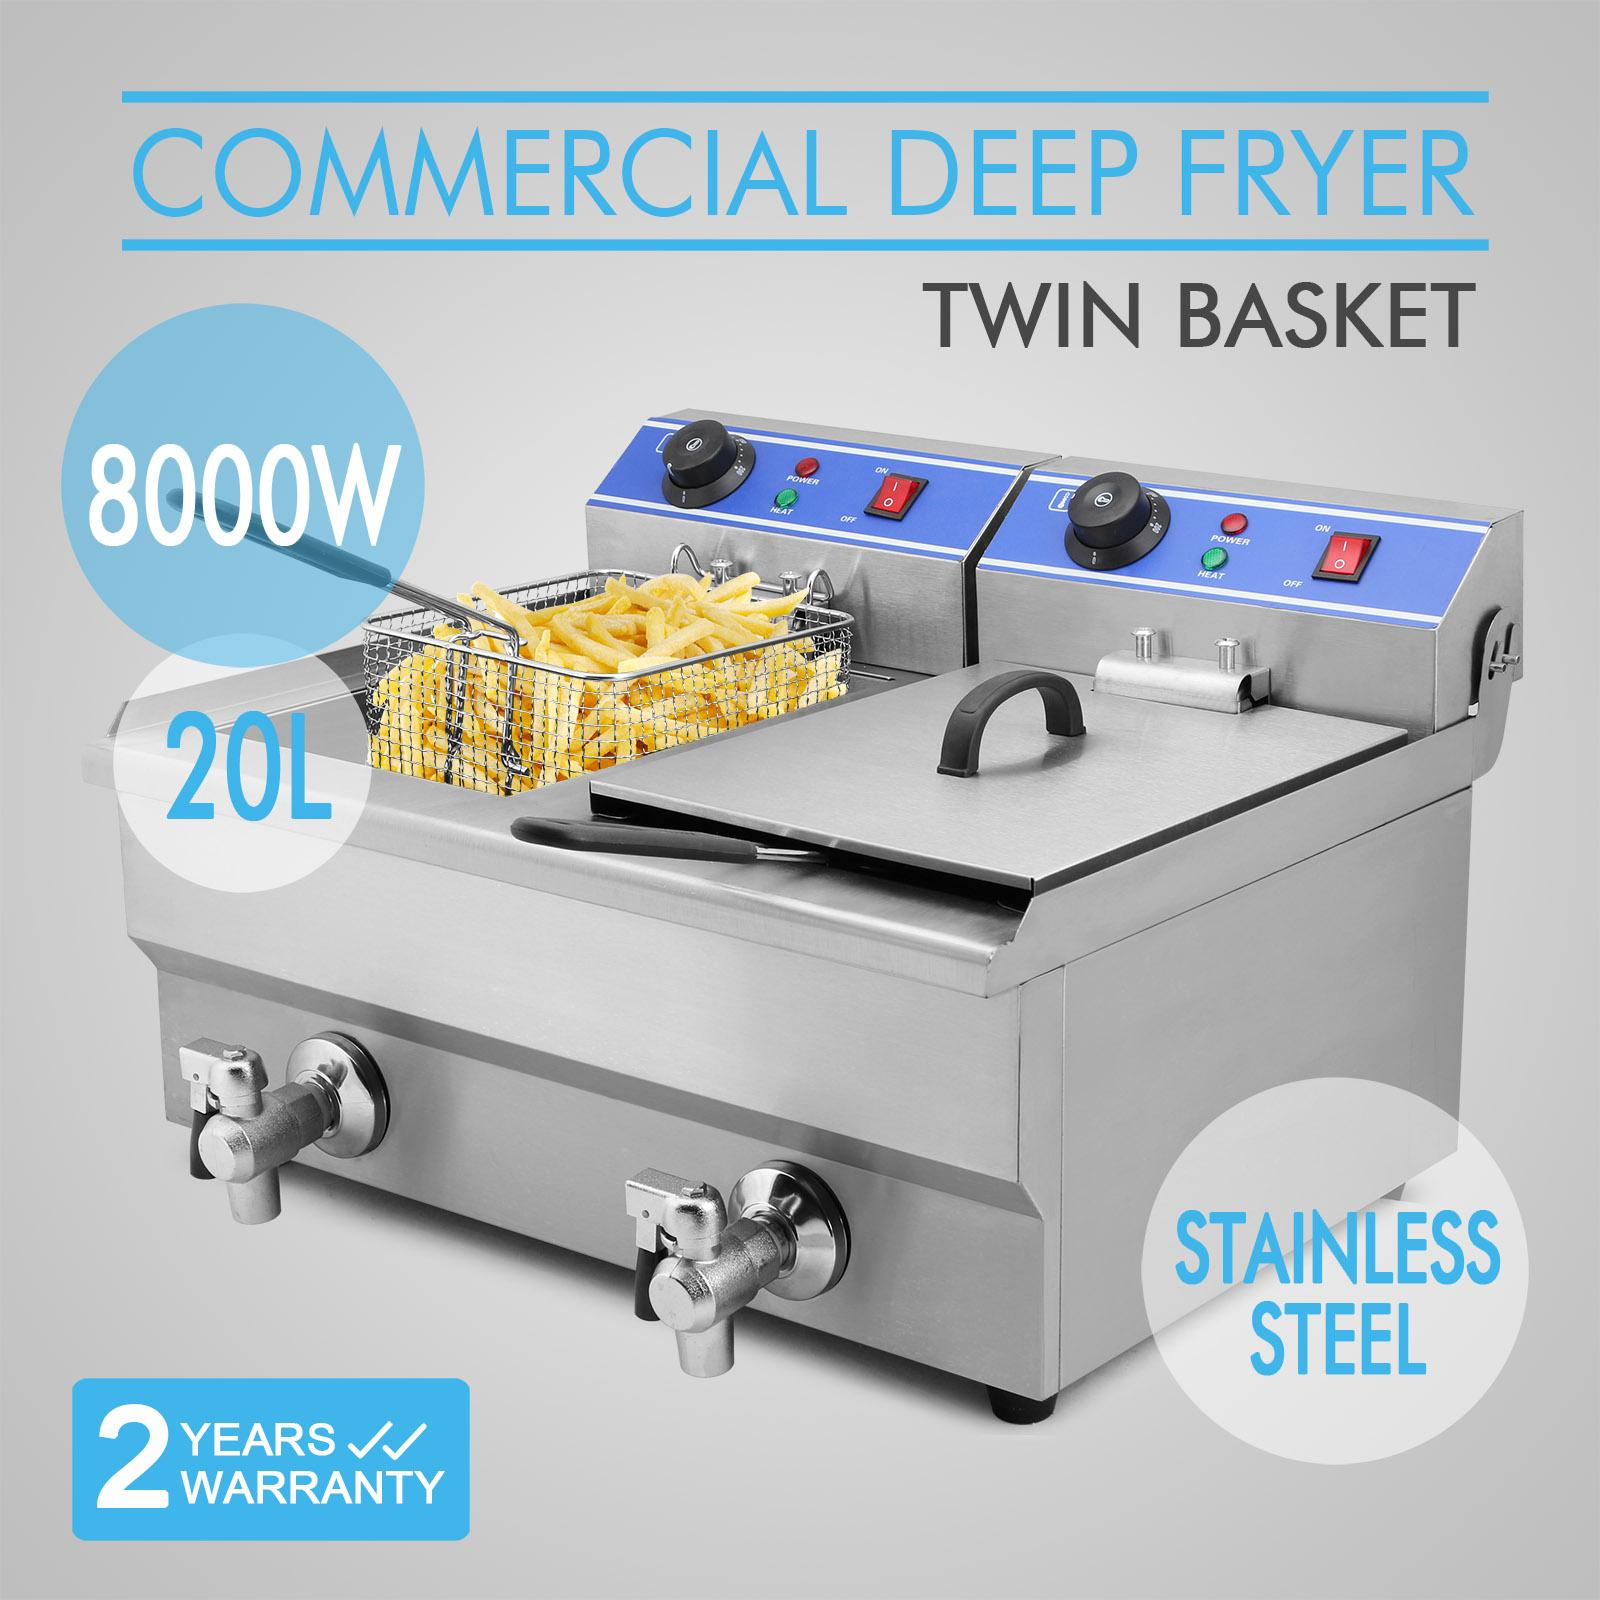 2019 Factory Price 20l 2x4kw Electric Countertop Deep Fryer Commercial Basket French Fry Restaurant Commercial Electric Deep Fryer From Sihao 160 81